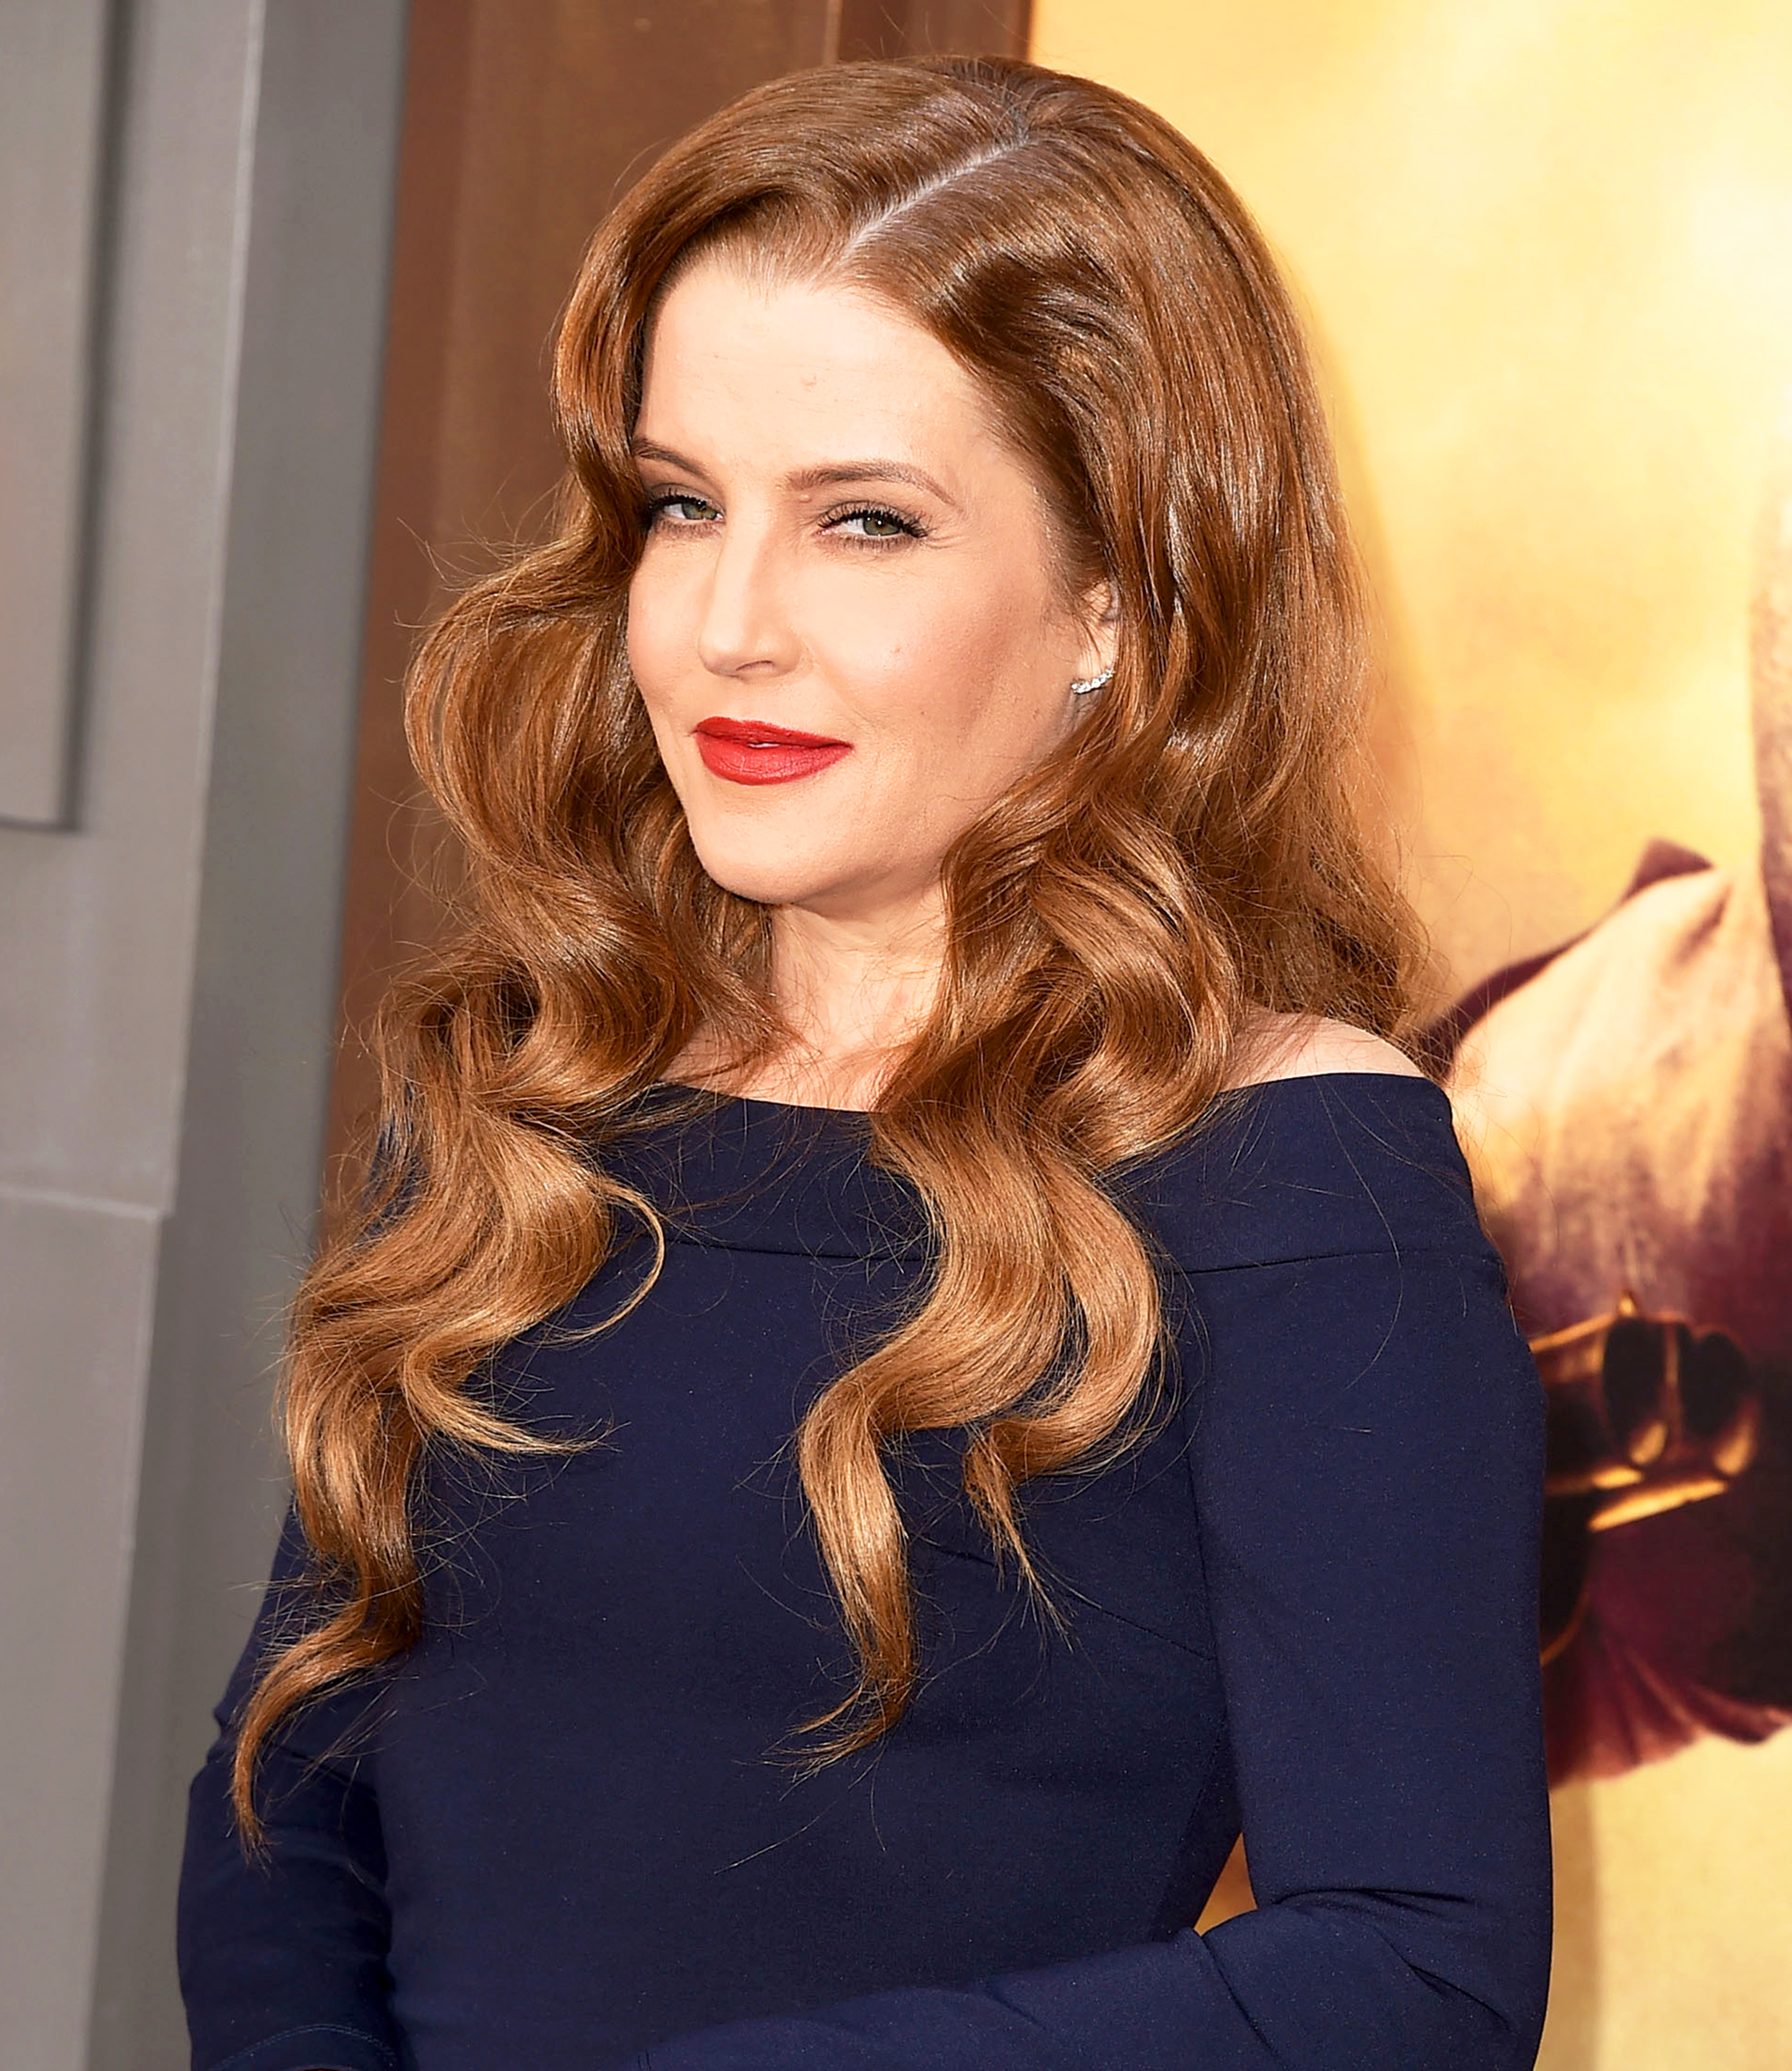 Lisa Marie Presley sues former business manager for $100M